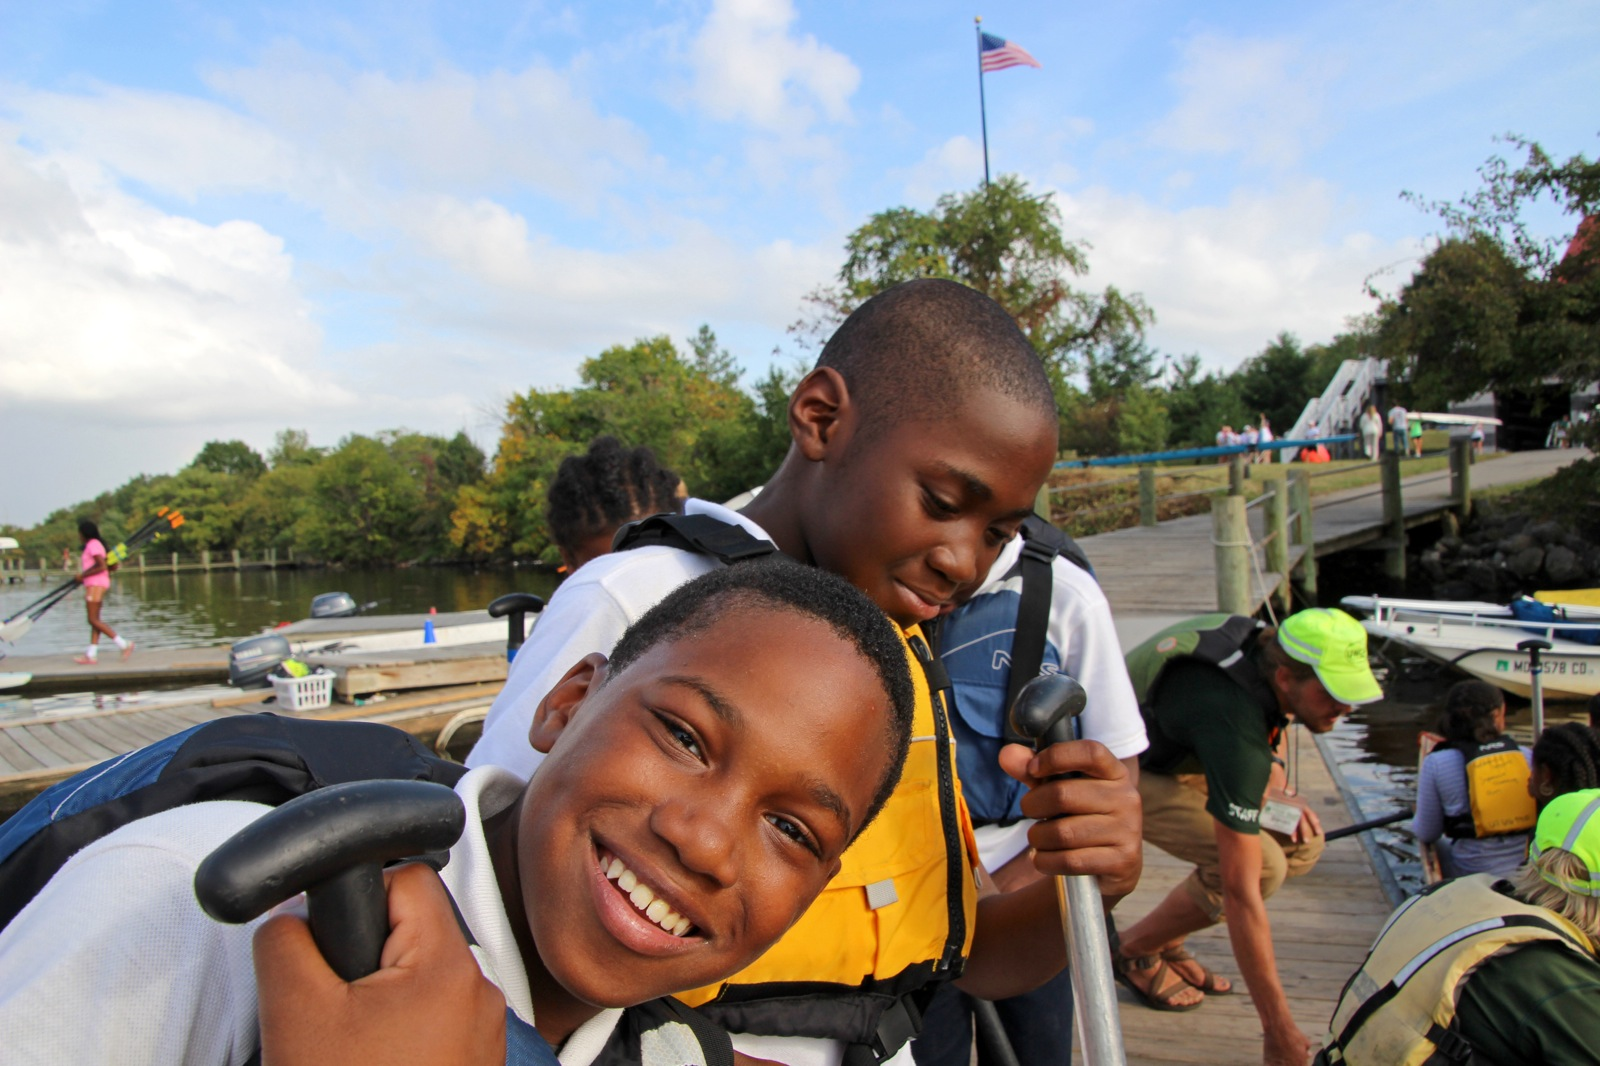 two boys stand on the dock with their life jackets and paddles ready to canoe the Patapsco